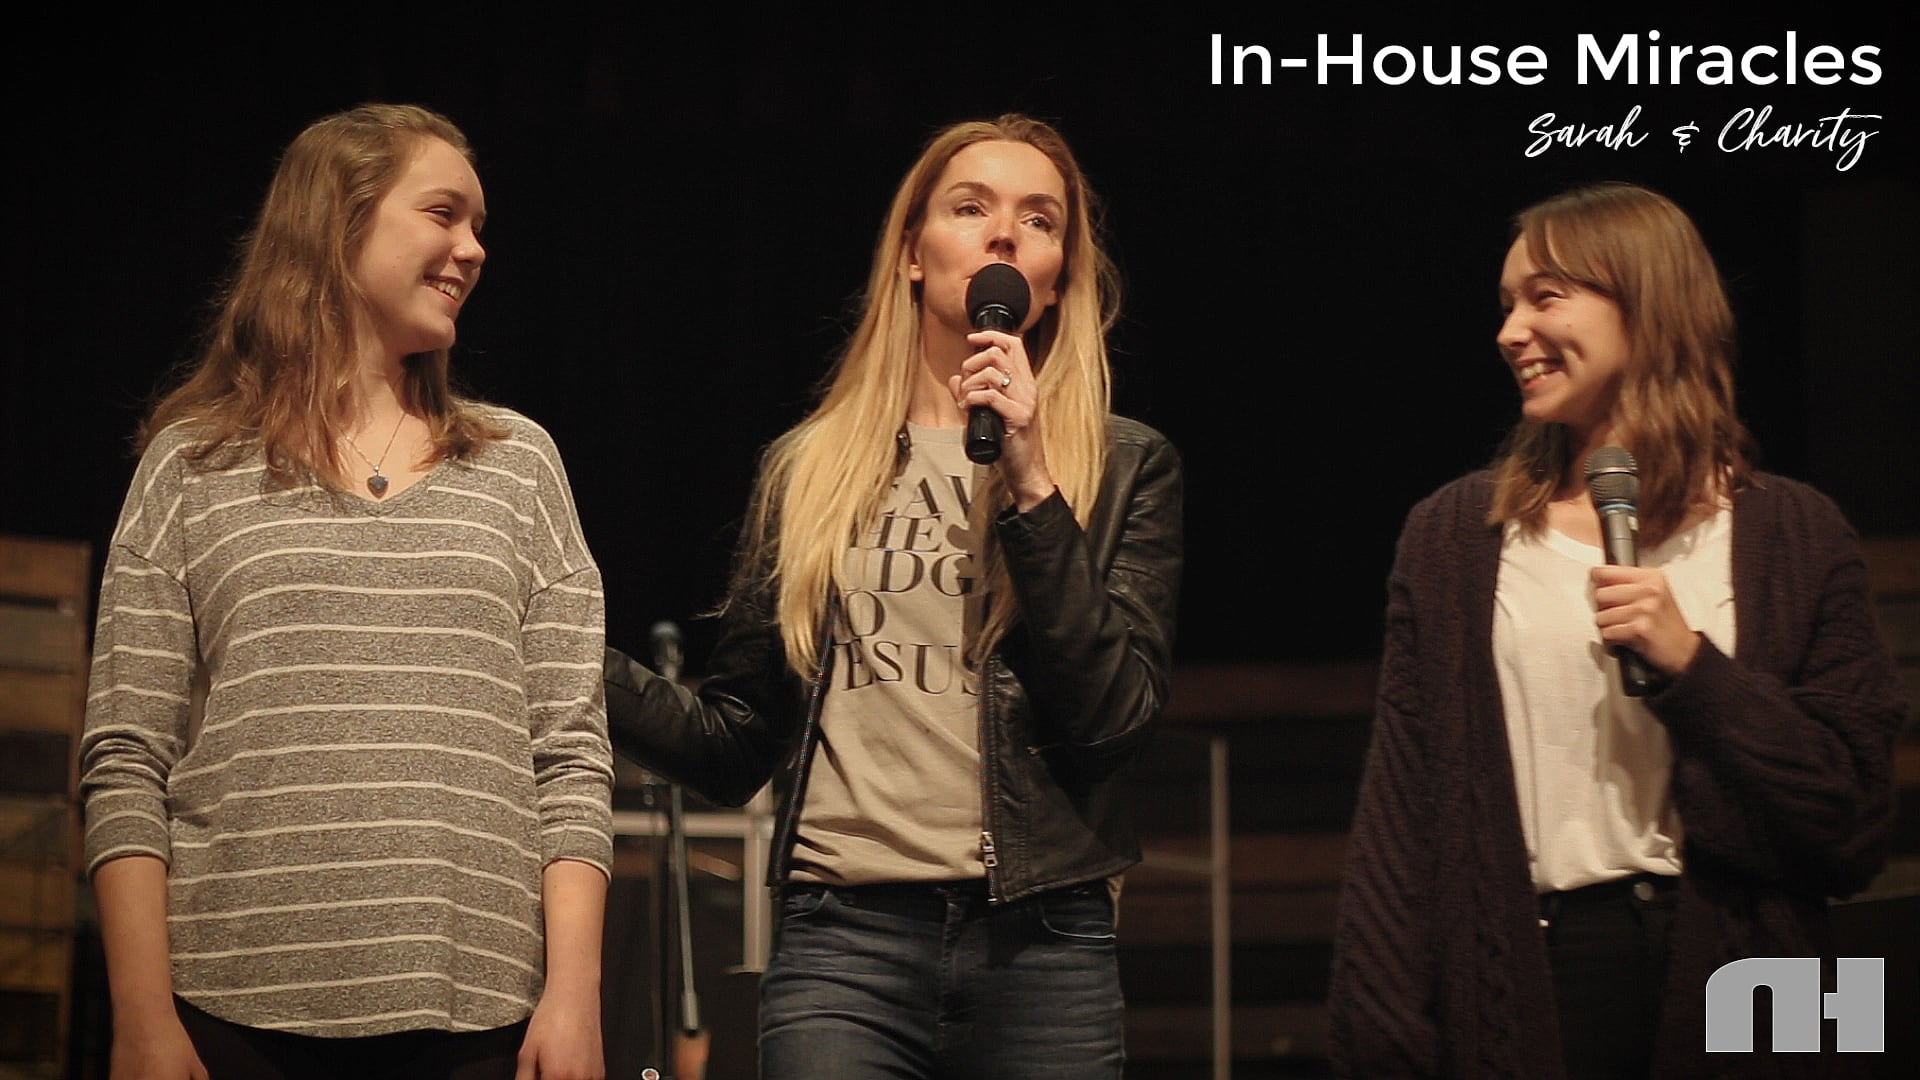 In-House Miracles: Sarah & Charity